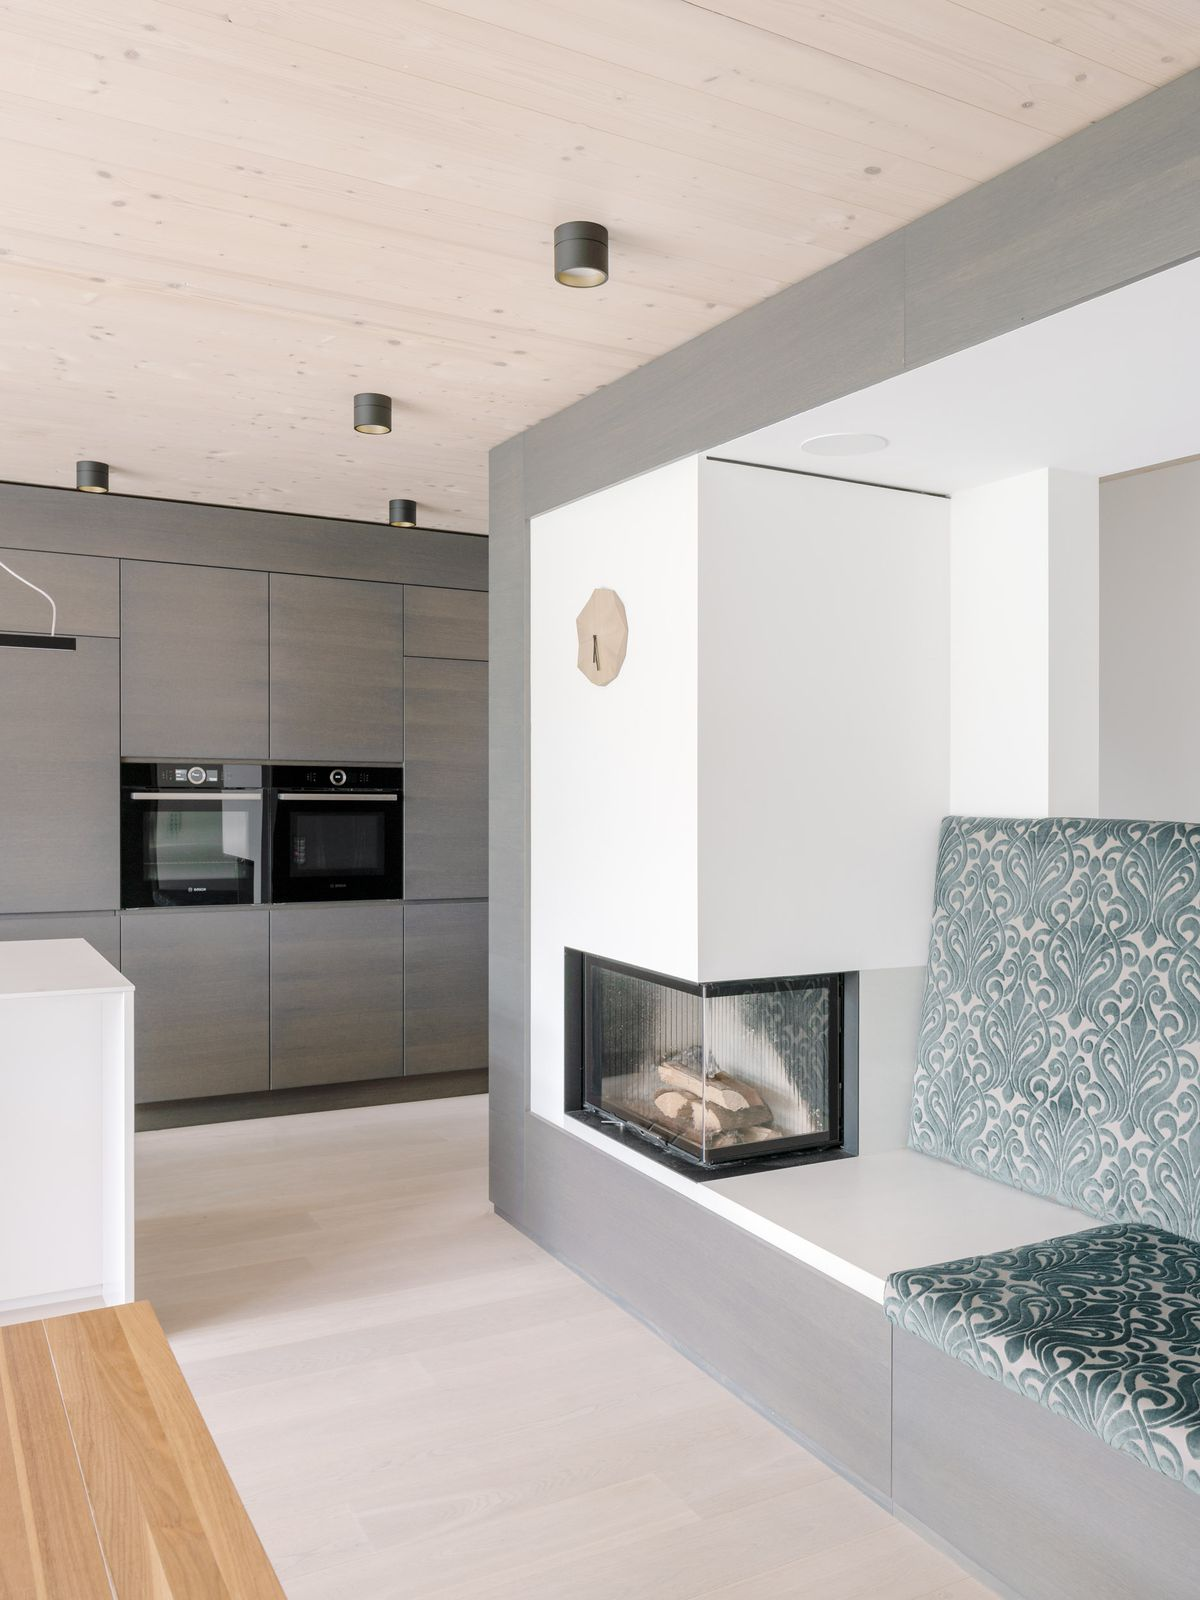 A glass fireplace is embedded in a white wall. Gray kitchen cabinets are in the background.